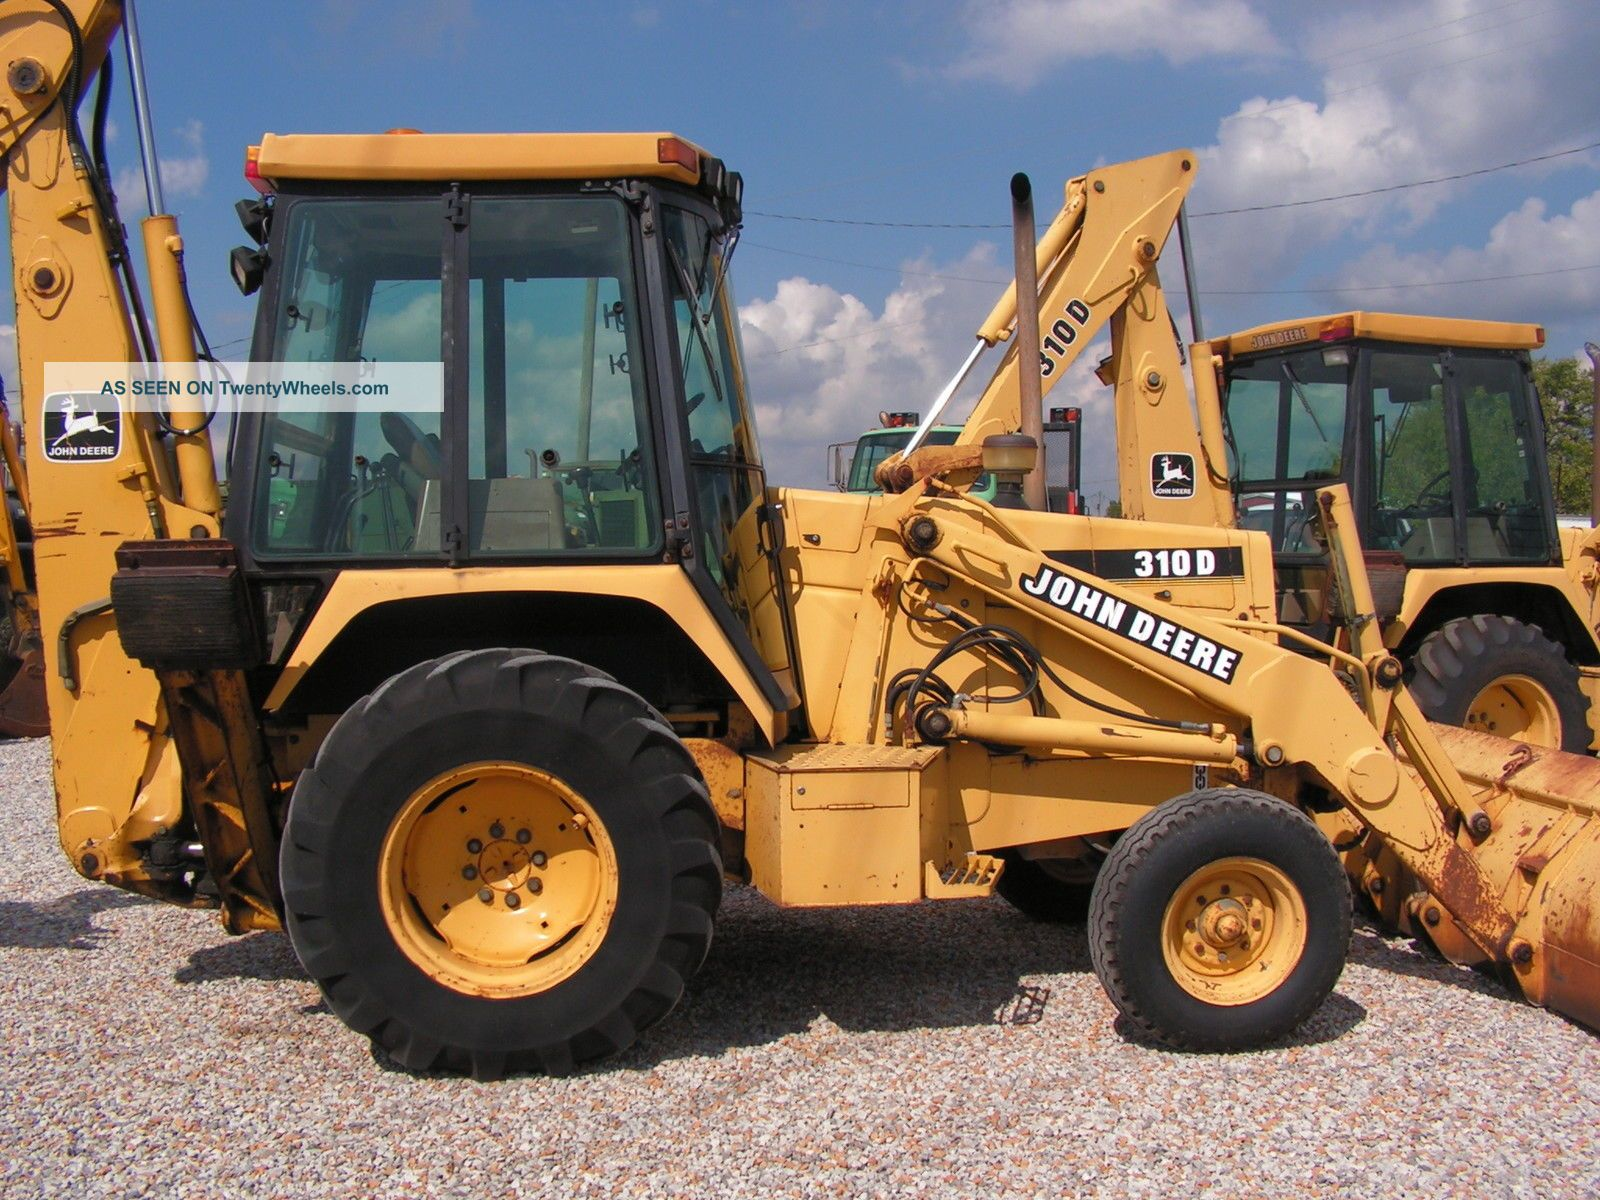 John Deere 310-B Backhoe Loaders - John Deere MachineFinder